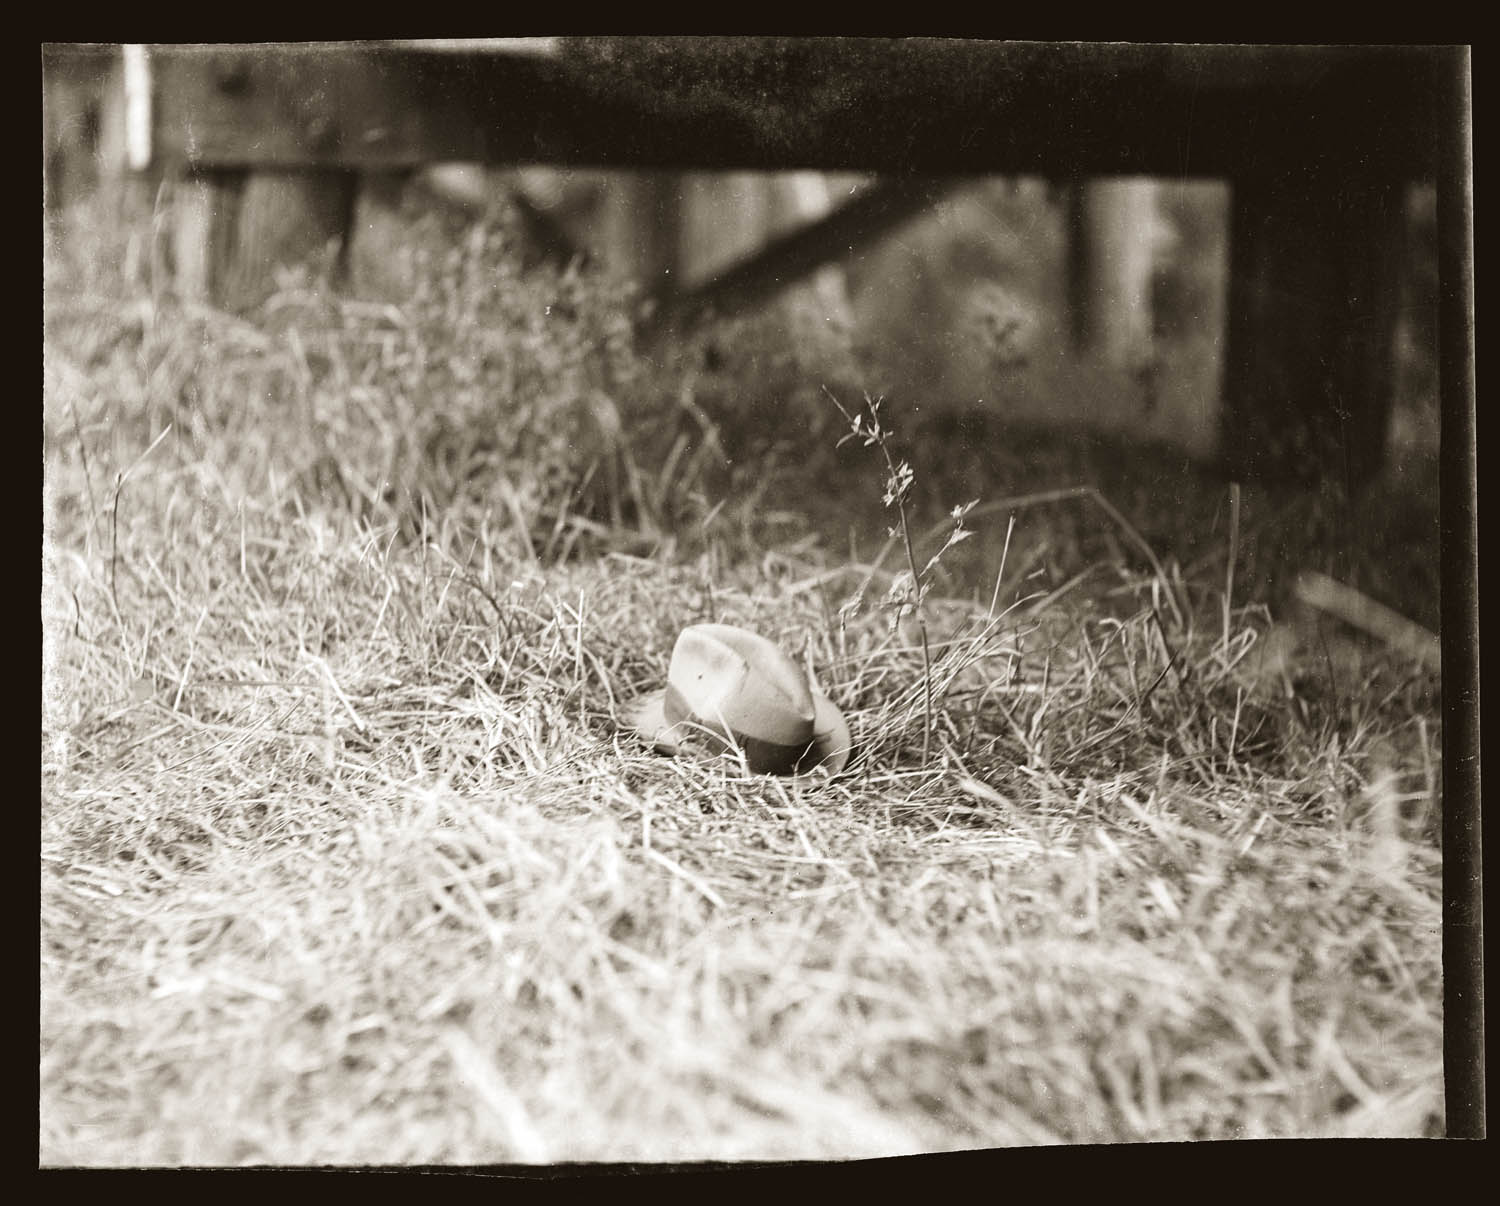 Man's hat lying on grass, beneath wooden bridge. Details unknown, early 1940s